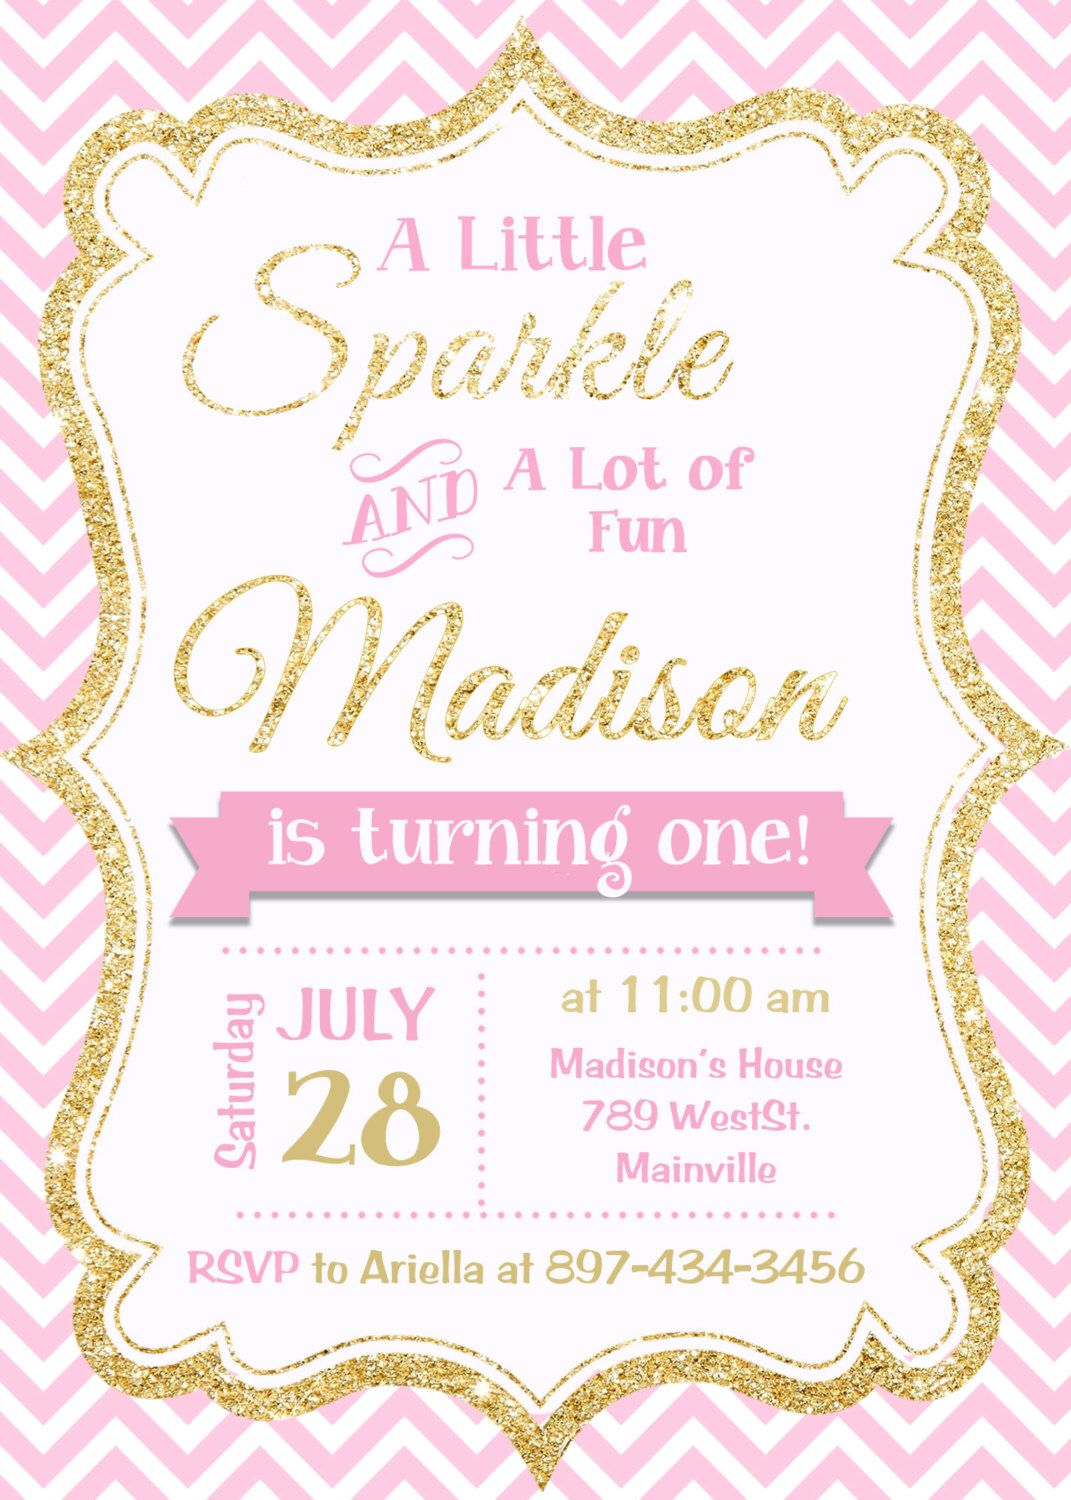 Pink and gold invitation gold glitter invitation 1st birthday pink and gold invitation gold glitter invitation 1st birthday invitation girl birthday invitation printable or printed by prettypaperpixels on etsy filmwisefo